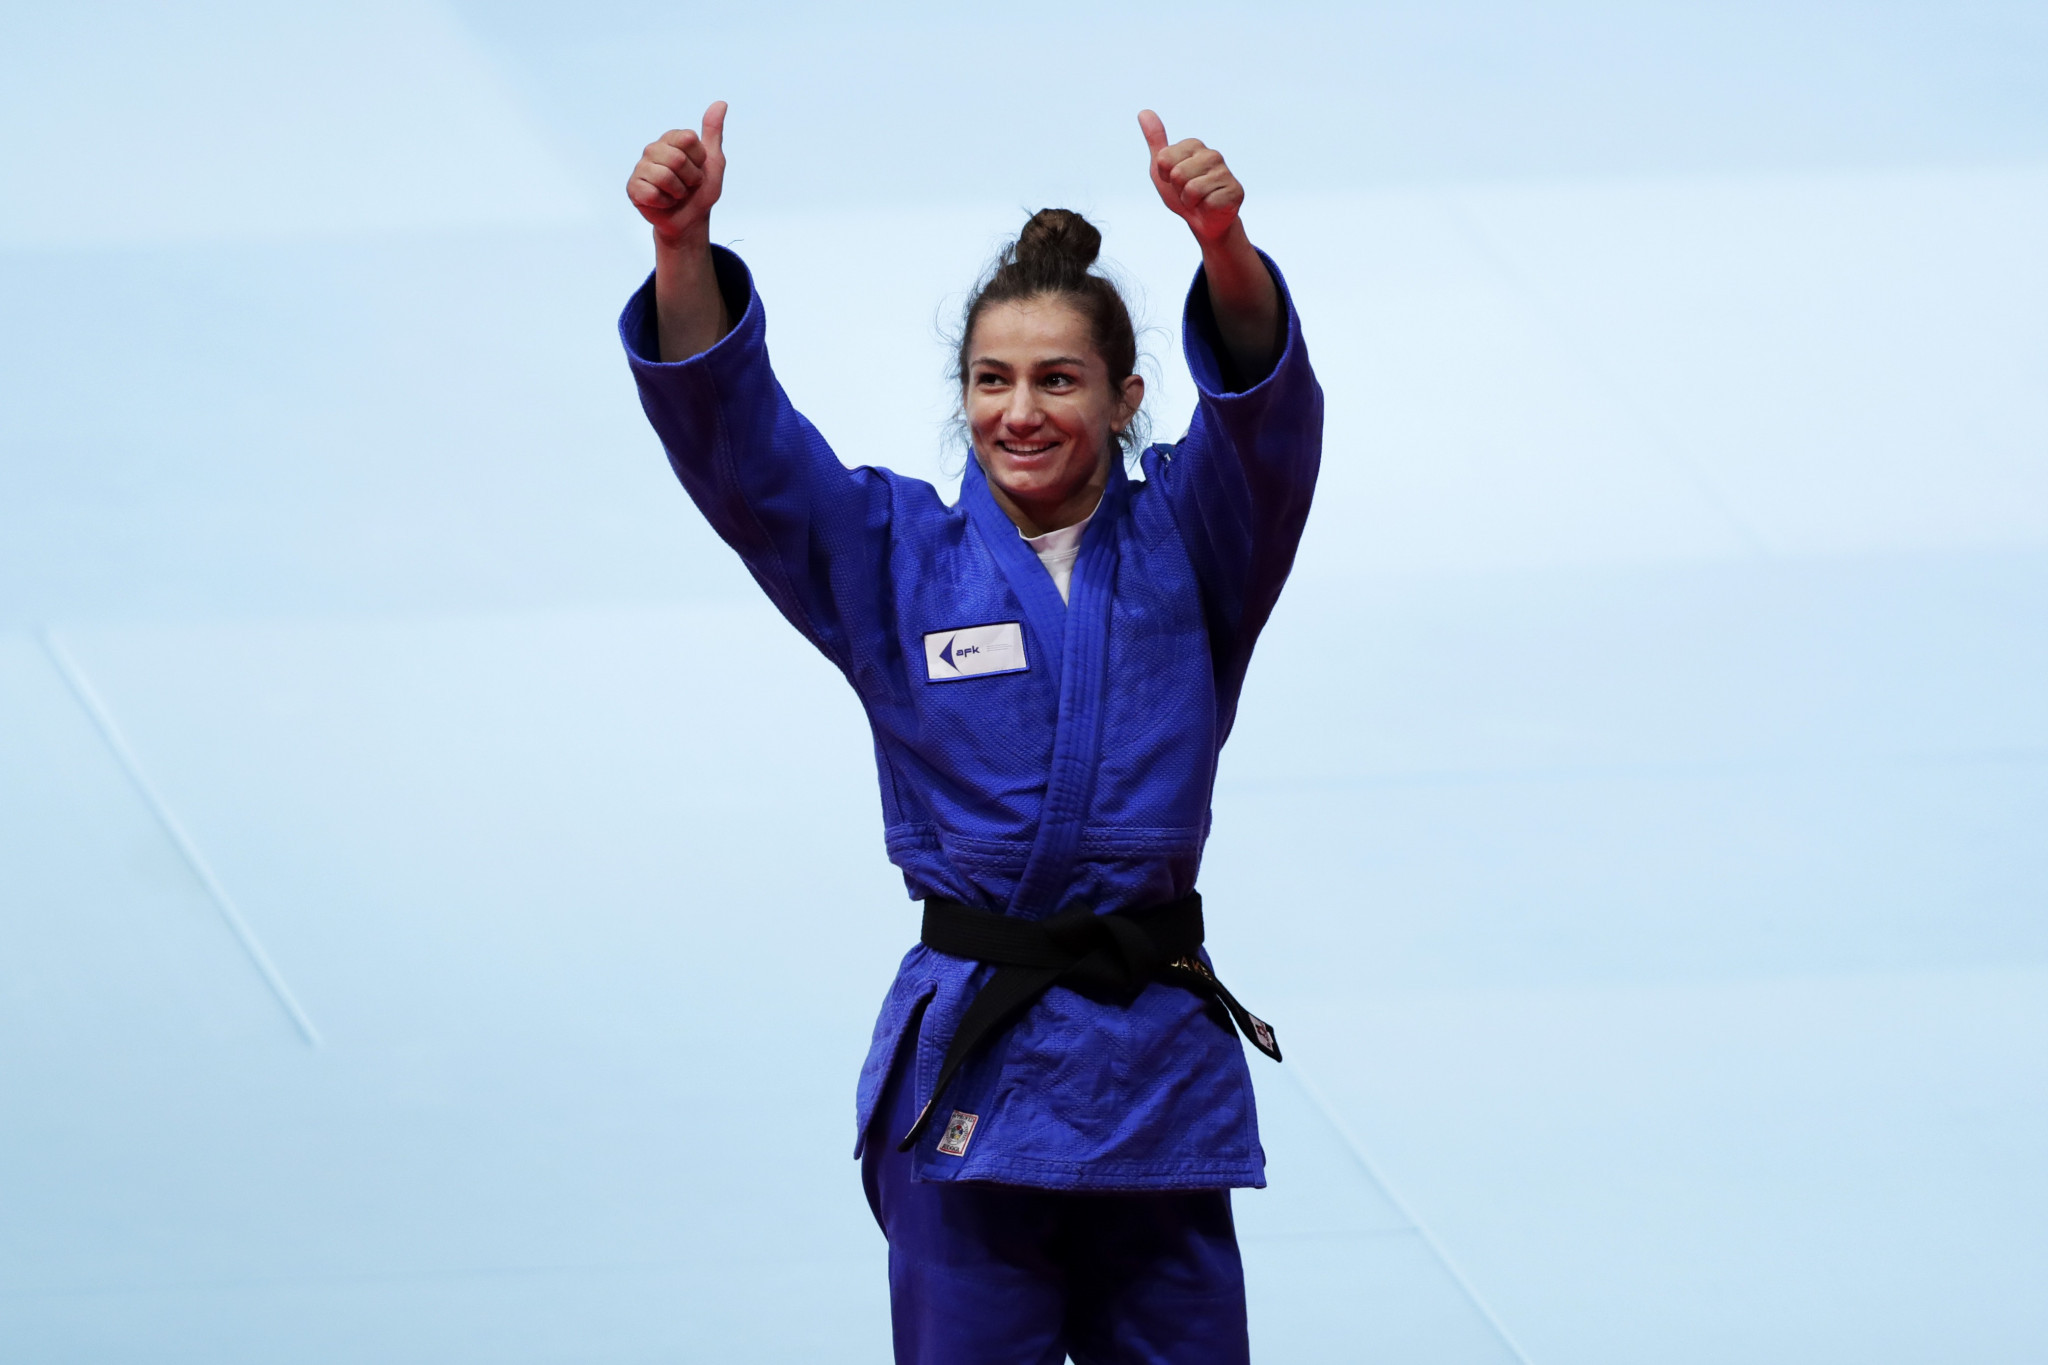 Rio 2016 Olympic champion Majlinda Kelmendi will be one of the athletes in attendance ©Getty Images